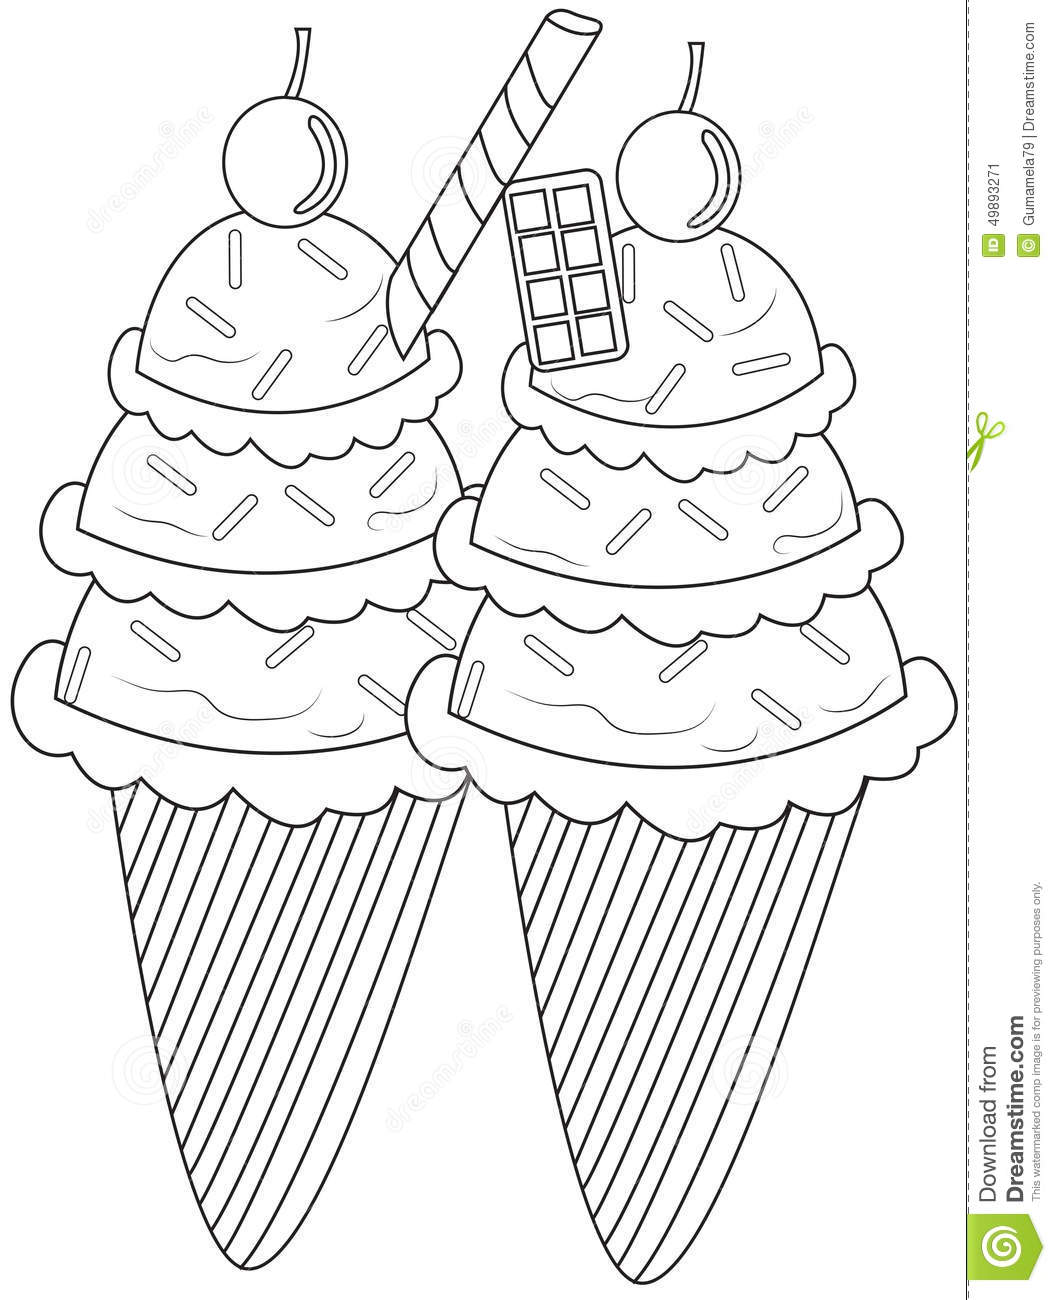 Ice cream coloring page stock illustration. Illustration of candies ...